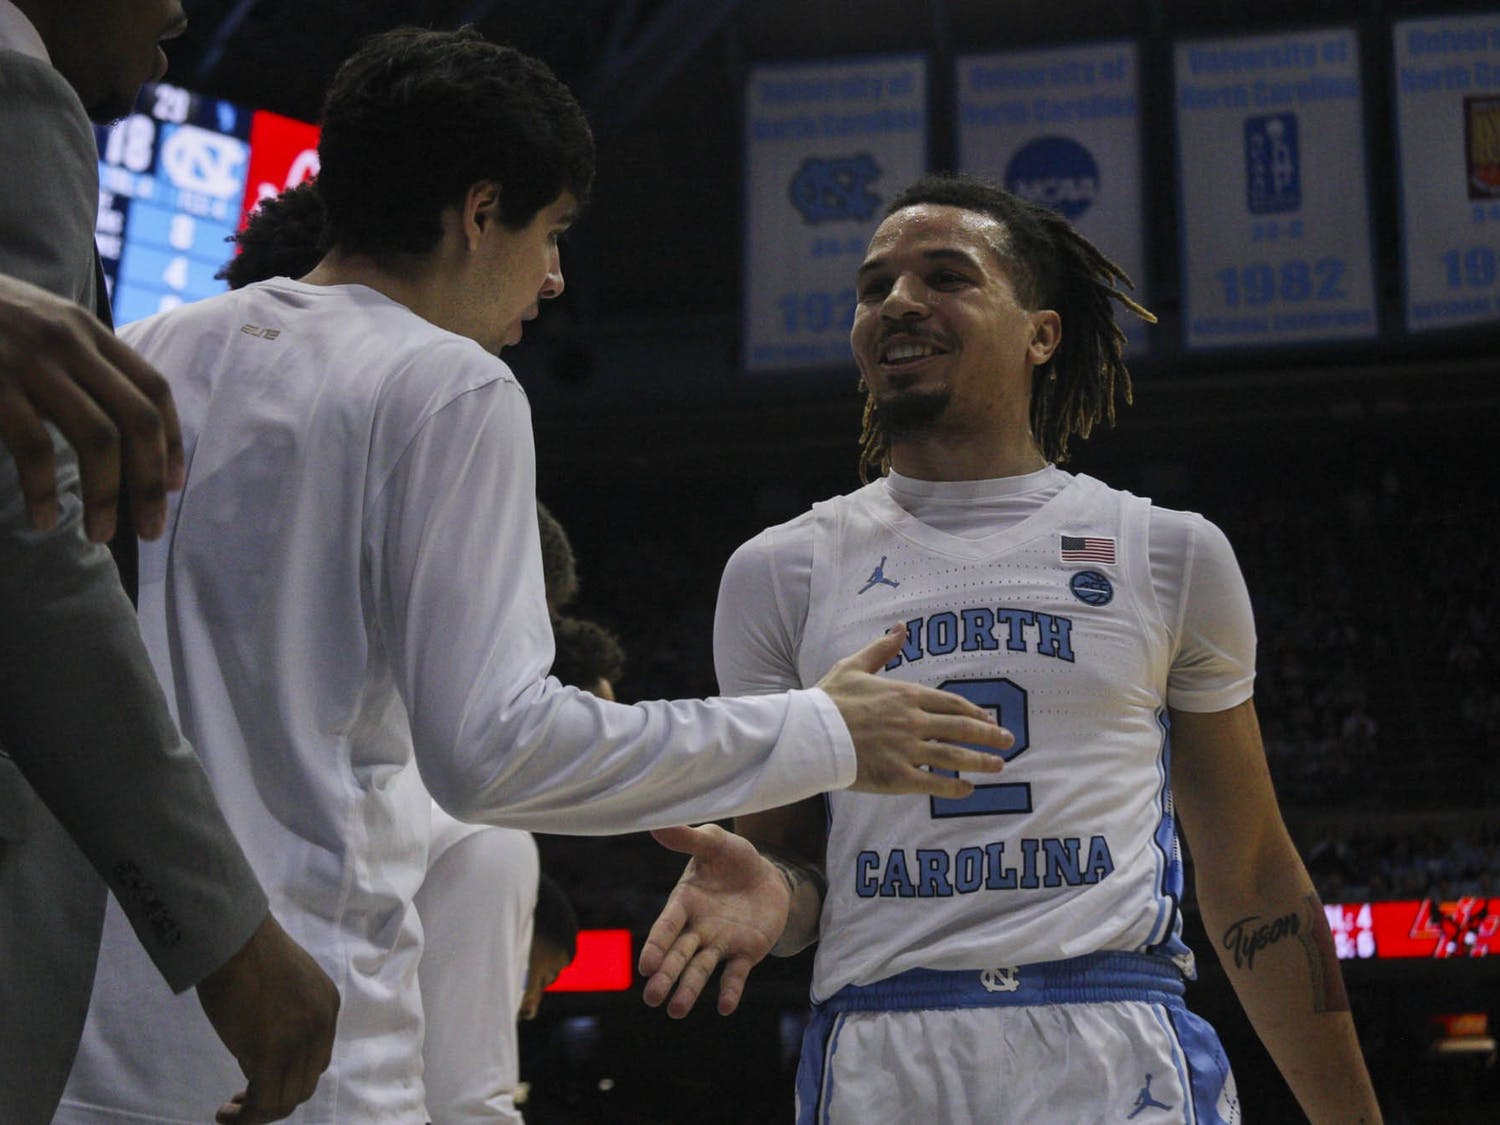 First-year guard Cole Anthony (2) comes out of the game smiling during the game against Boston College on Saturday, Feb. 1, 2020. UNC lost to Boston College 71-70.